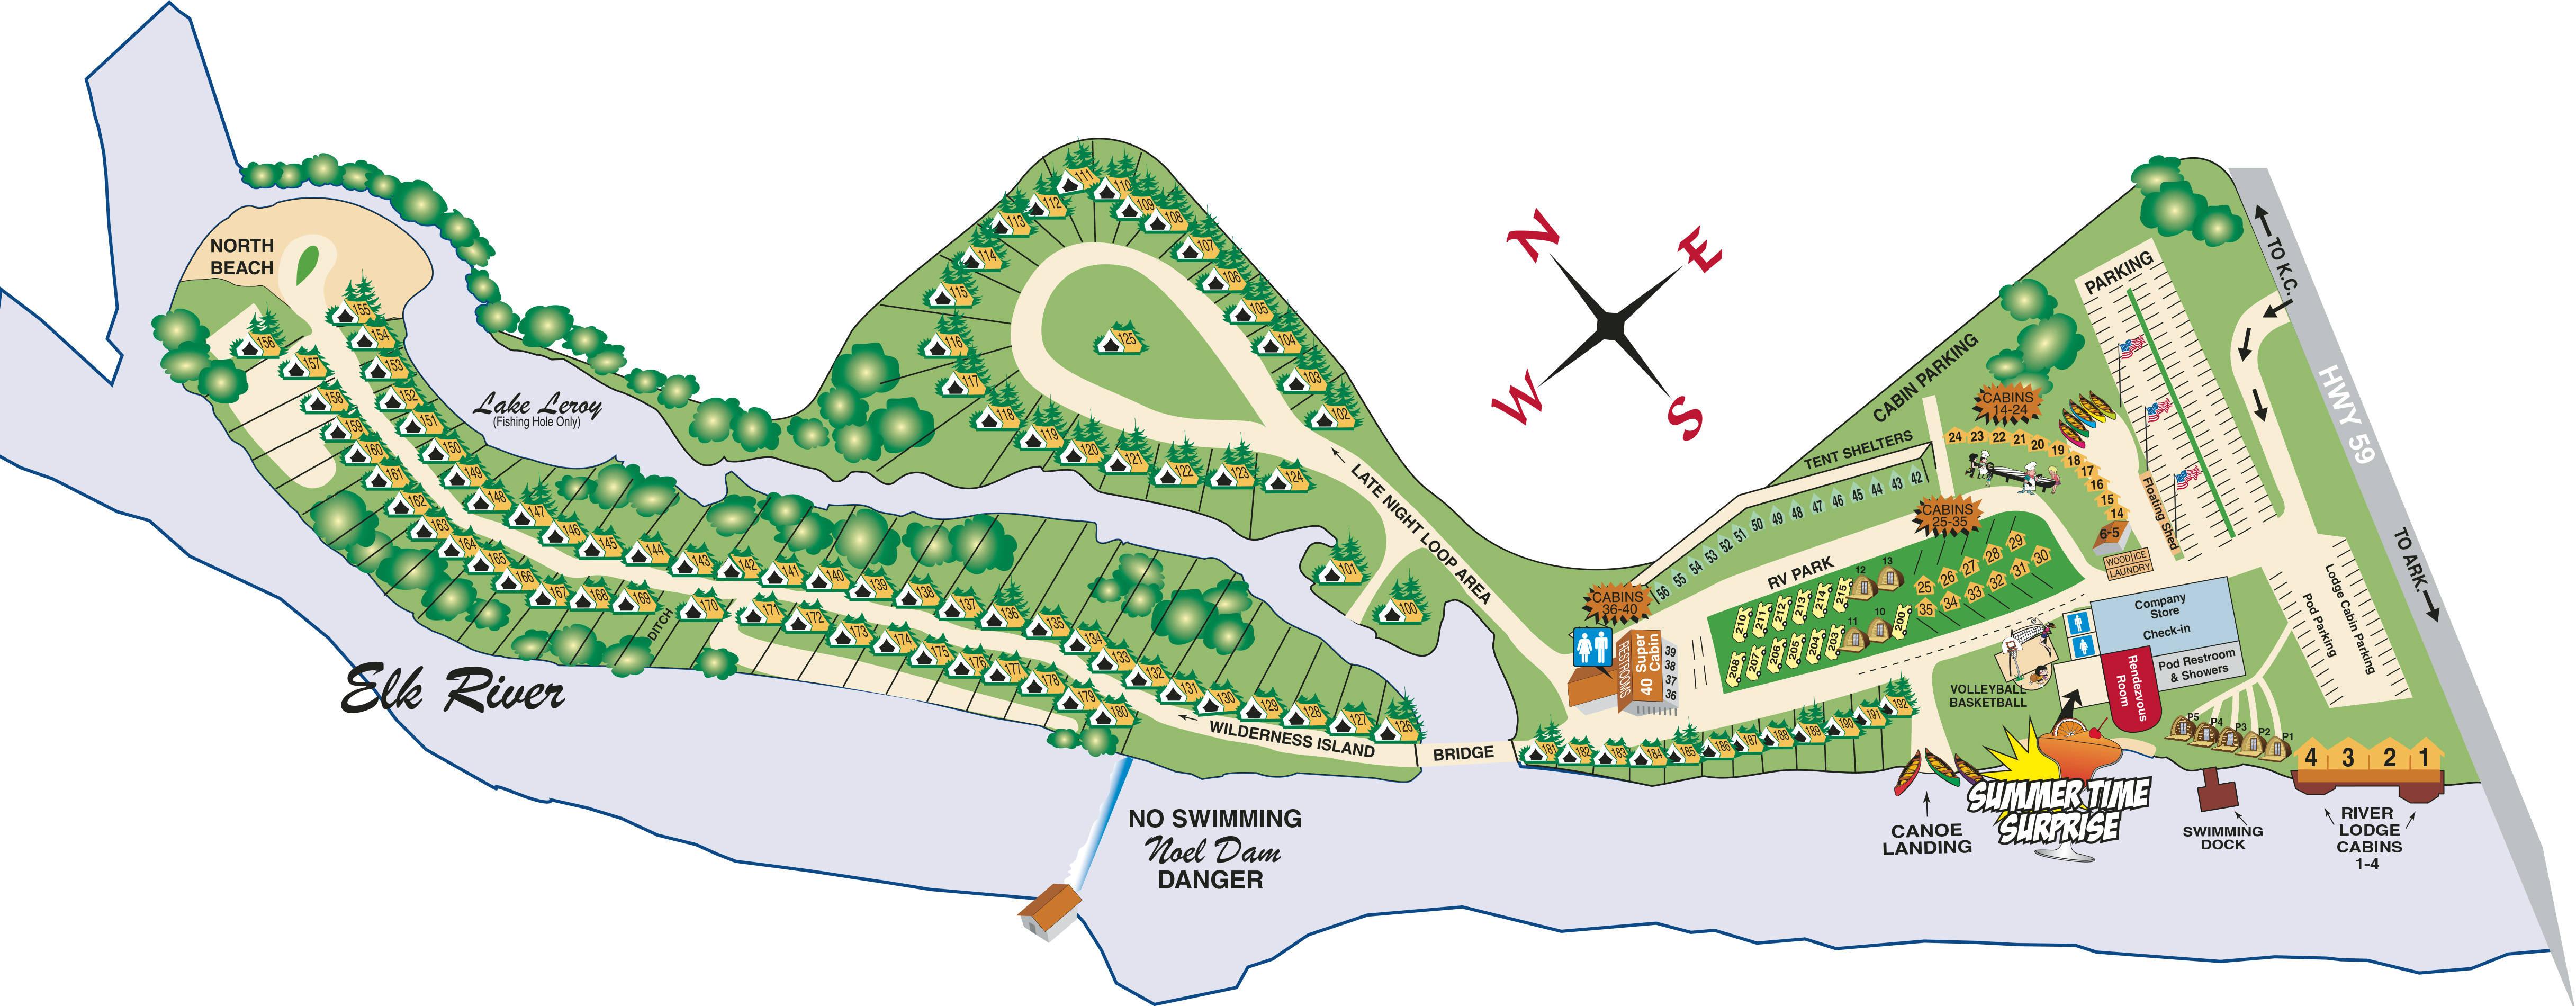 Resort Site Map 2021